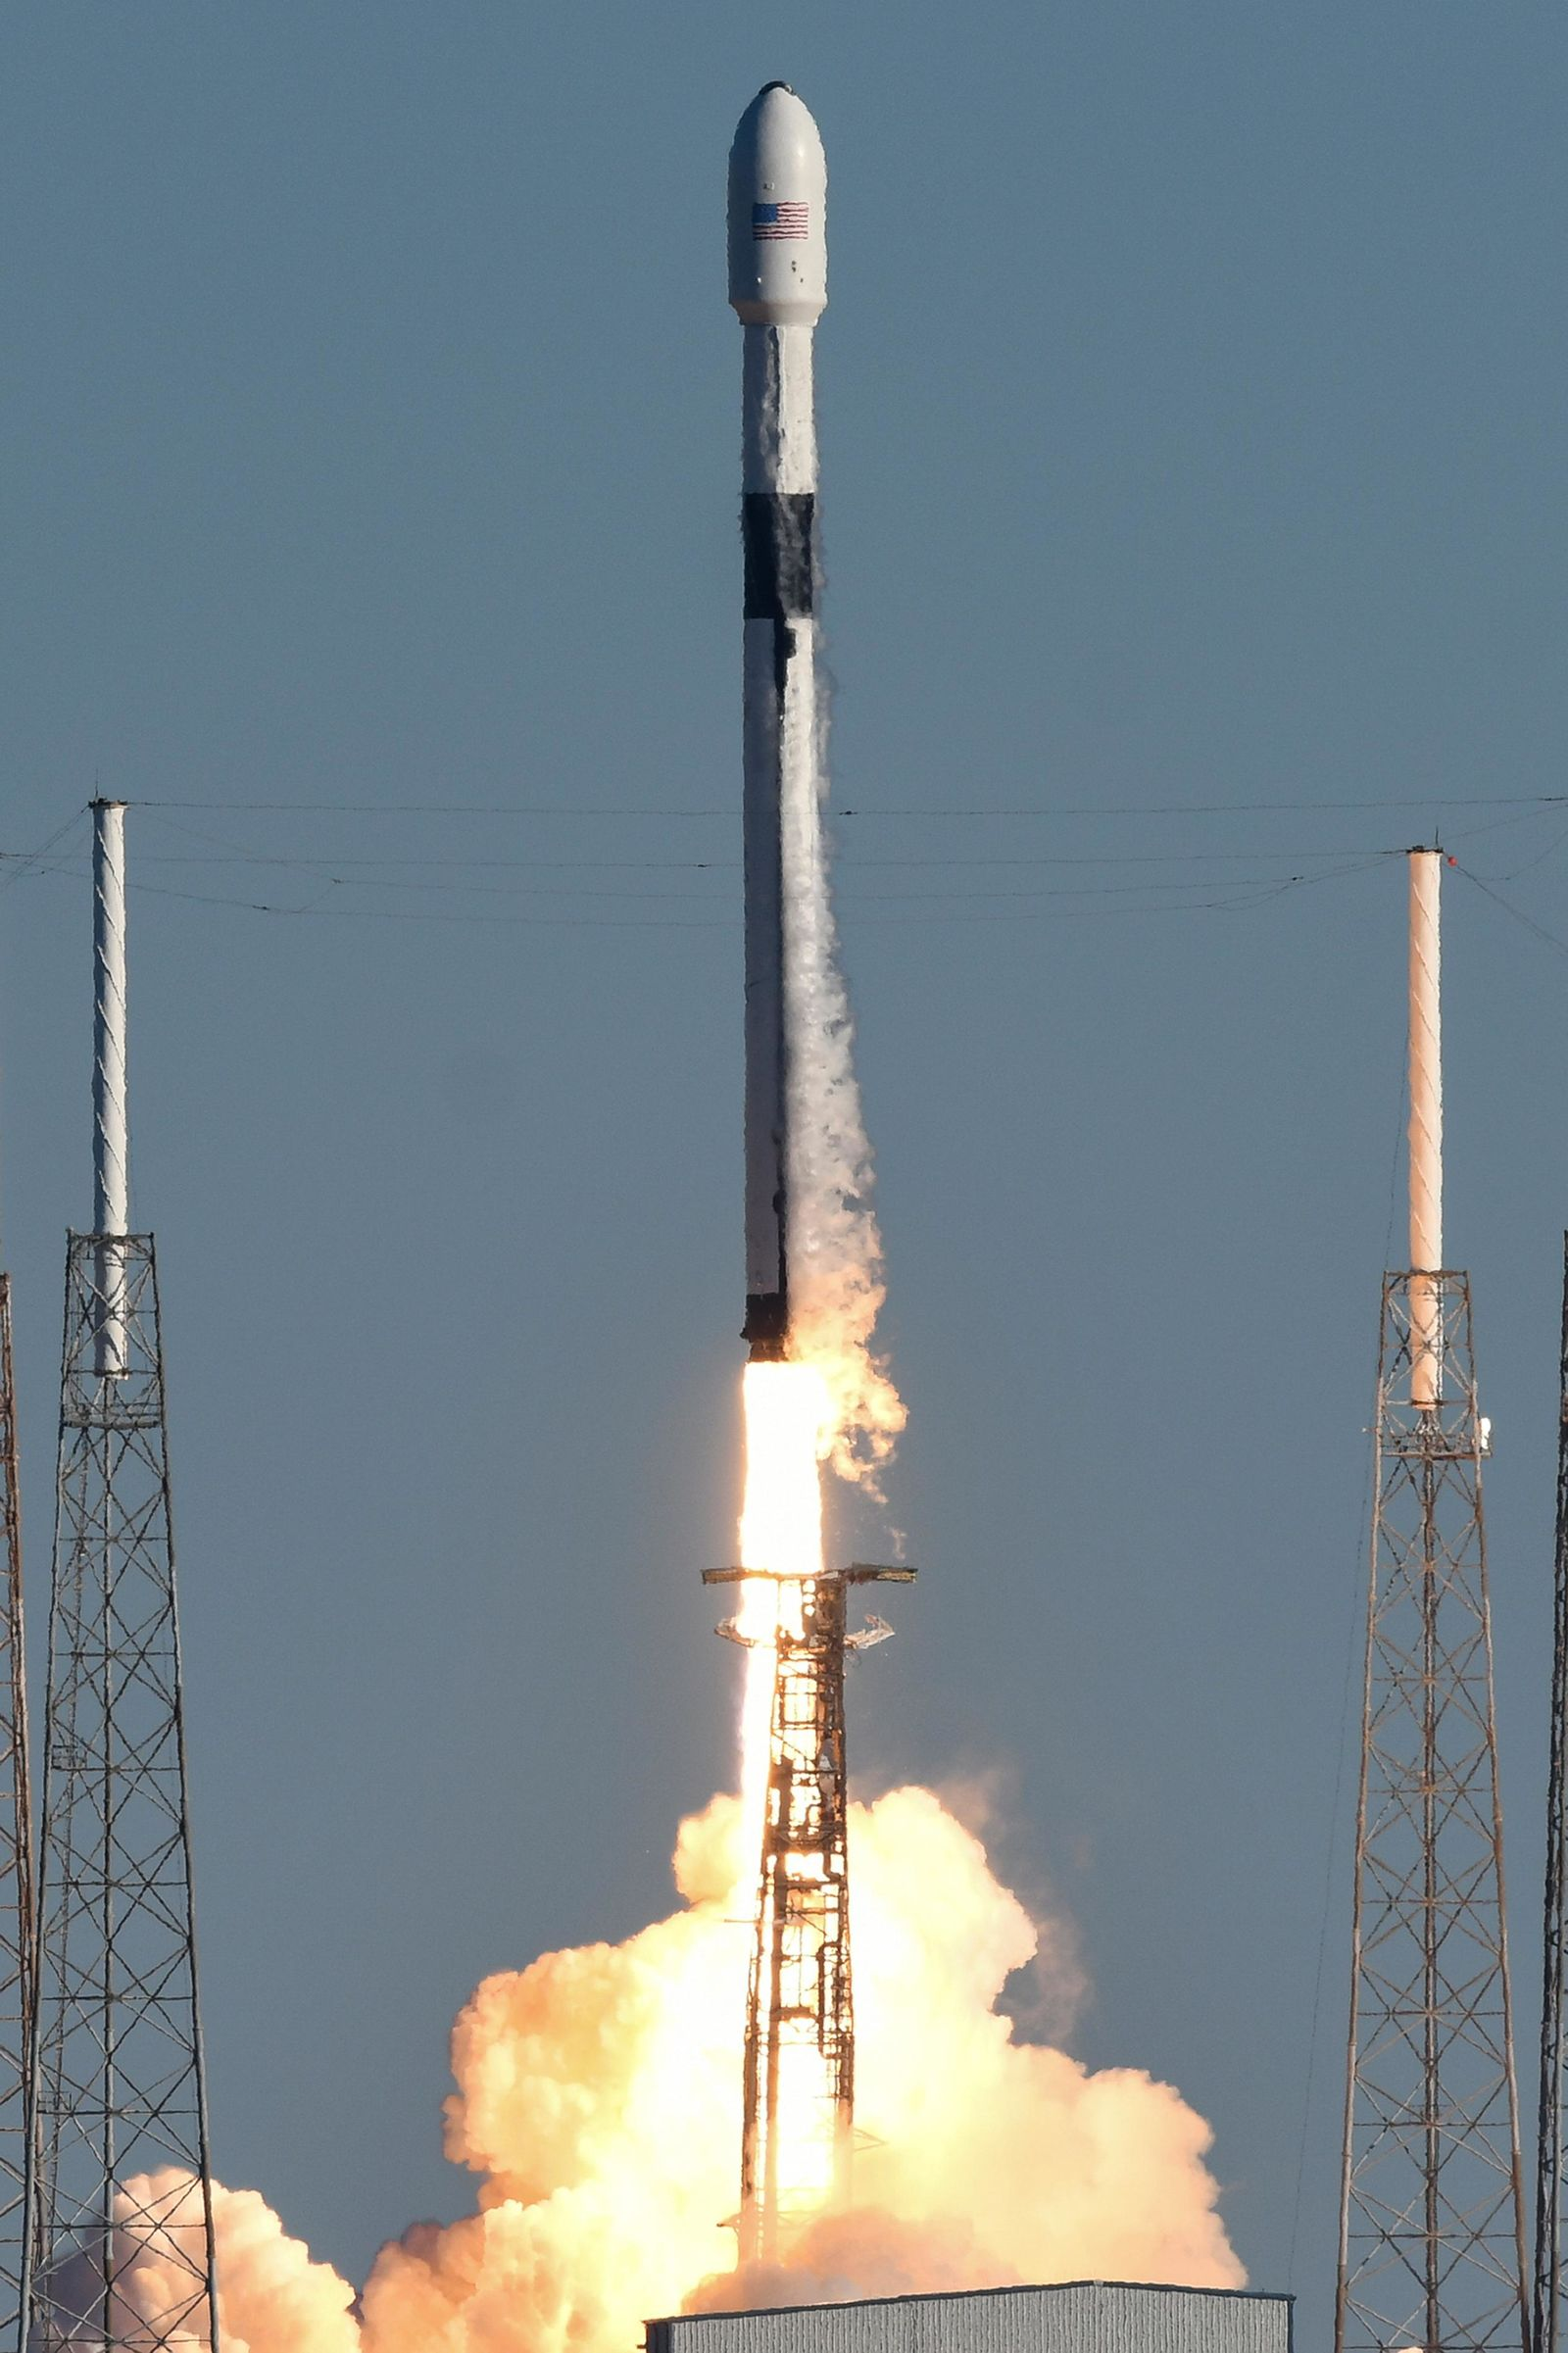 A SpaceX Falcon 9 rocket lifts off at the Cape Canaveral Air Force Station in Cape Canaveral, Fla., Sunday, Dec. 23, 2018. The rocket is carrying the U.S. Air Force's most powerful GPS satellite ever built. (Craig Bailey/Florida Today via AP)